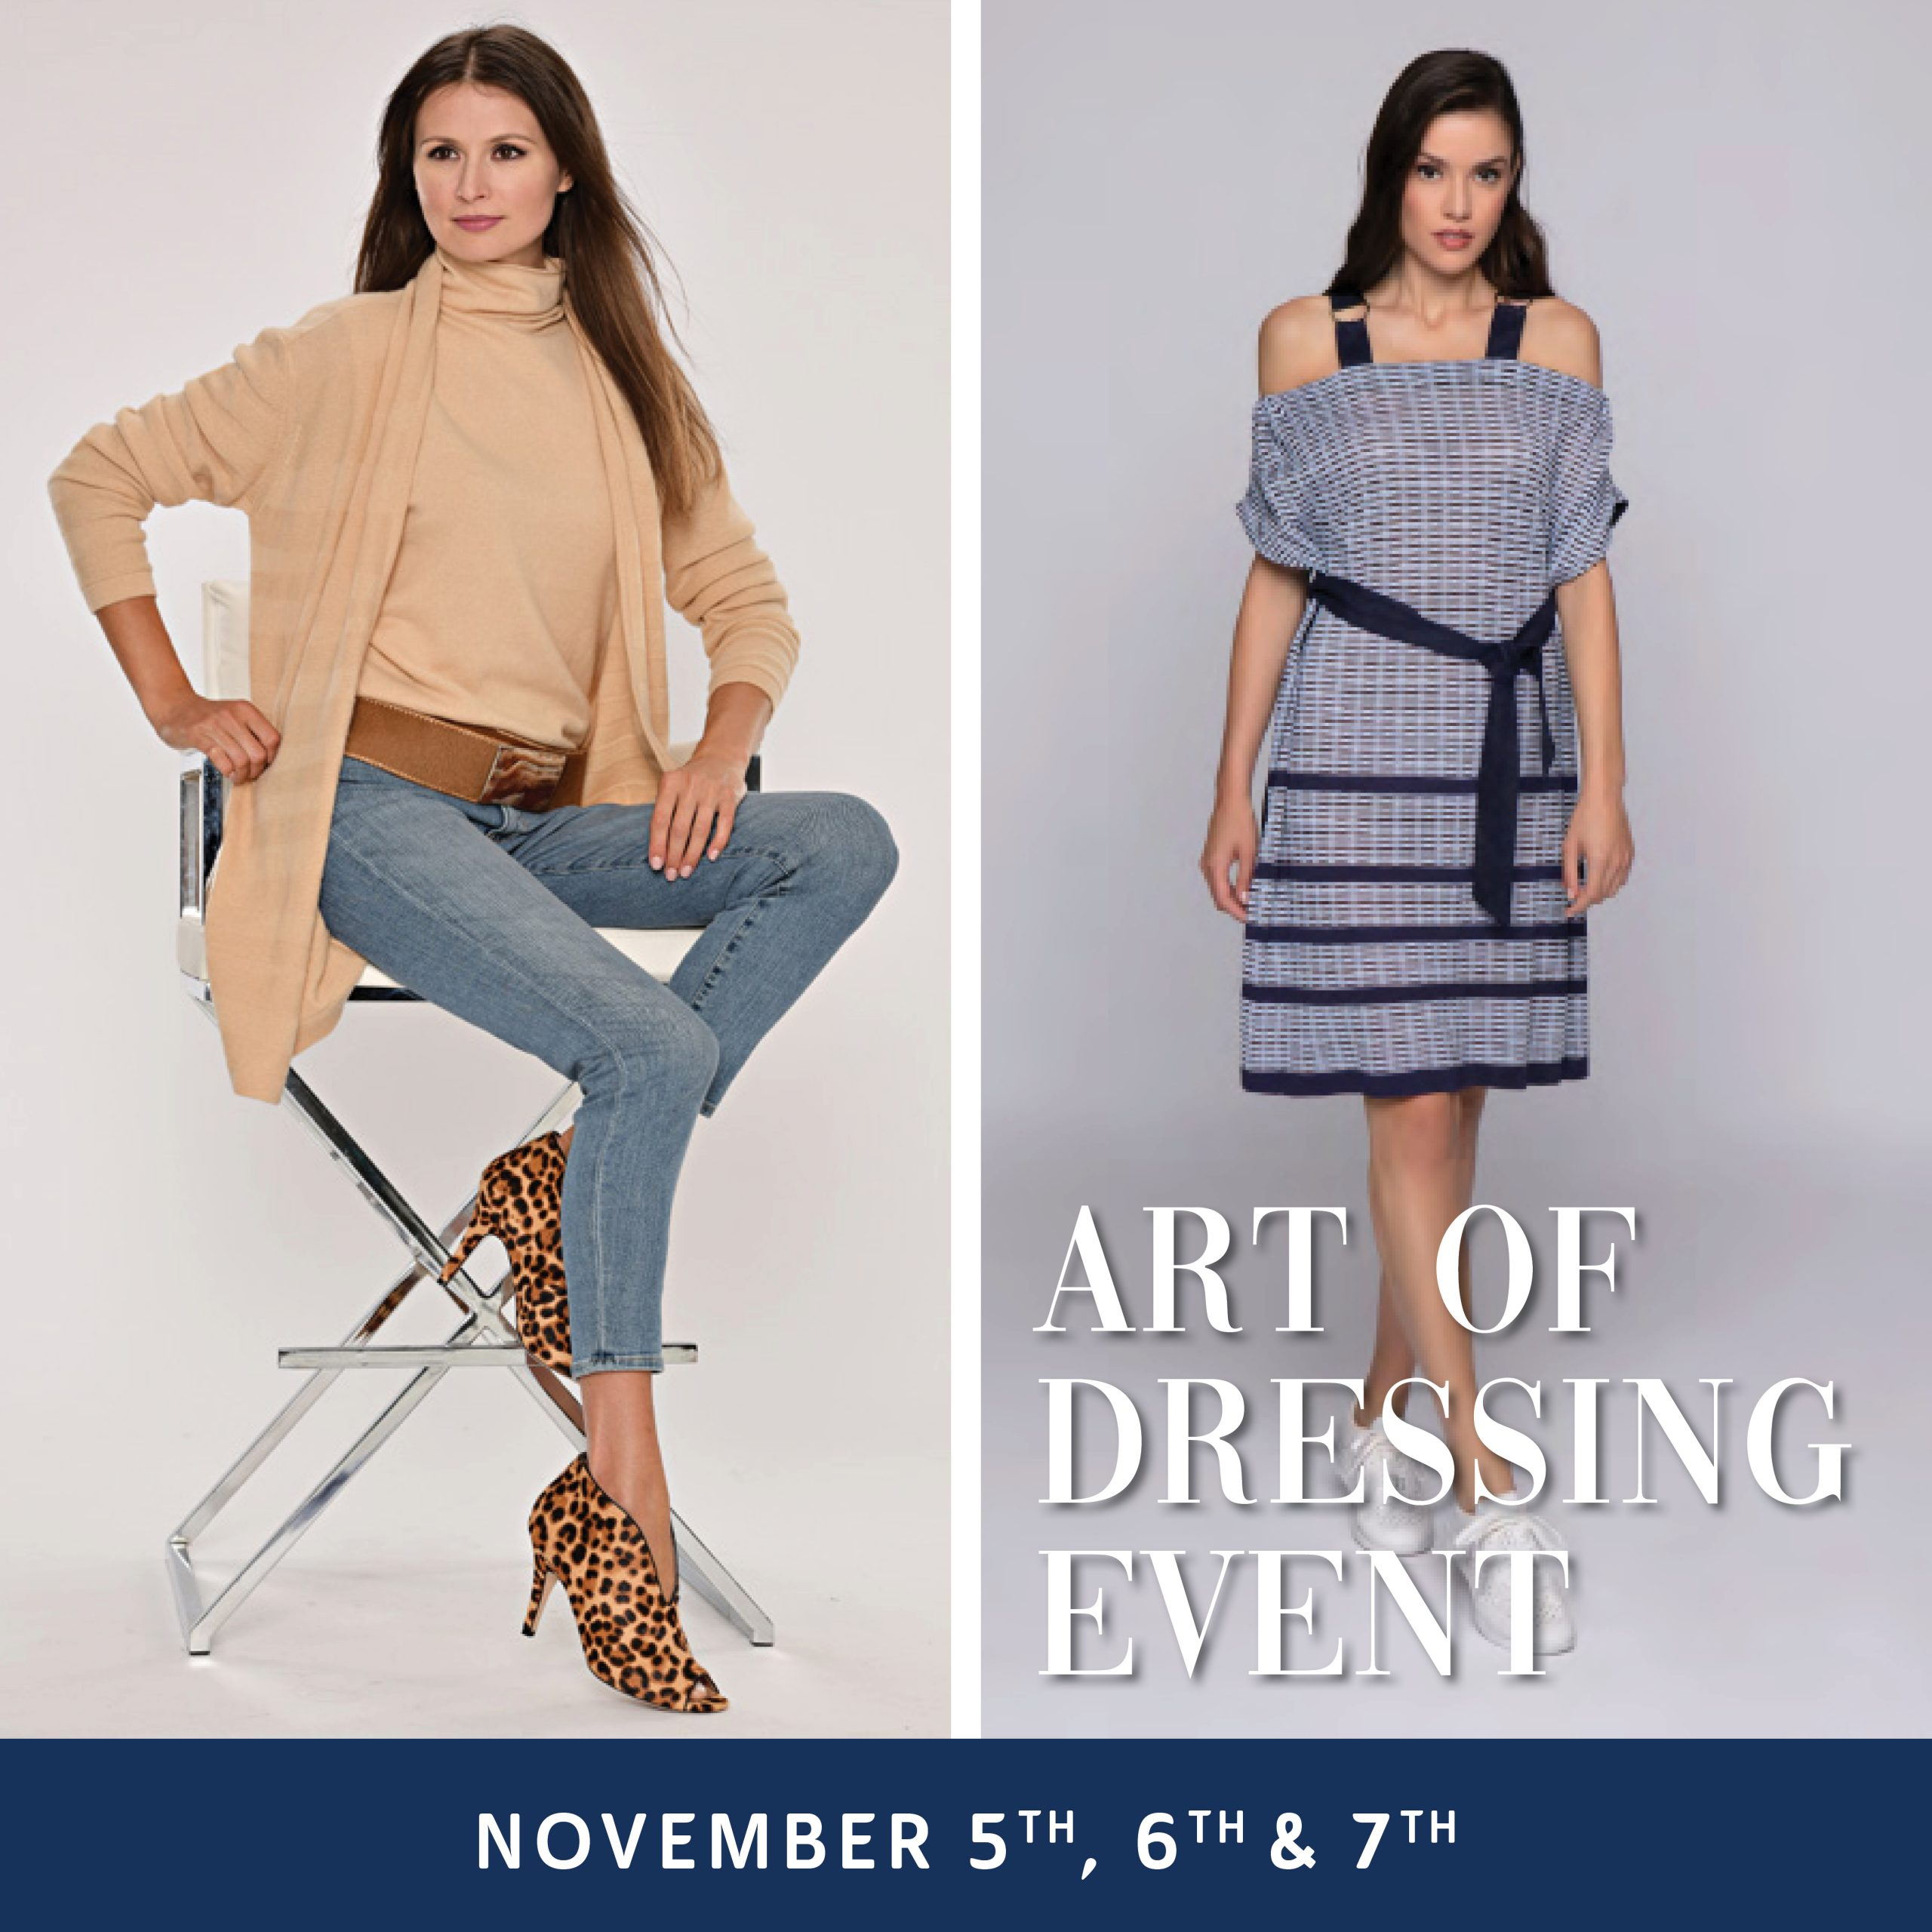 The Art of Dressing Event